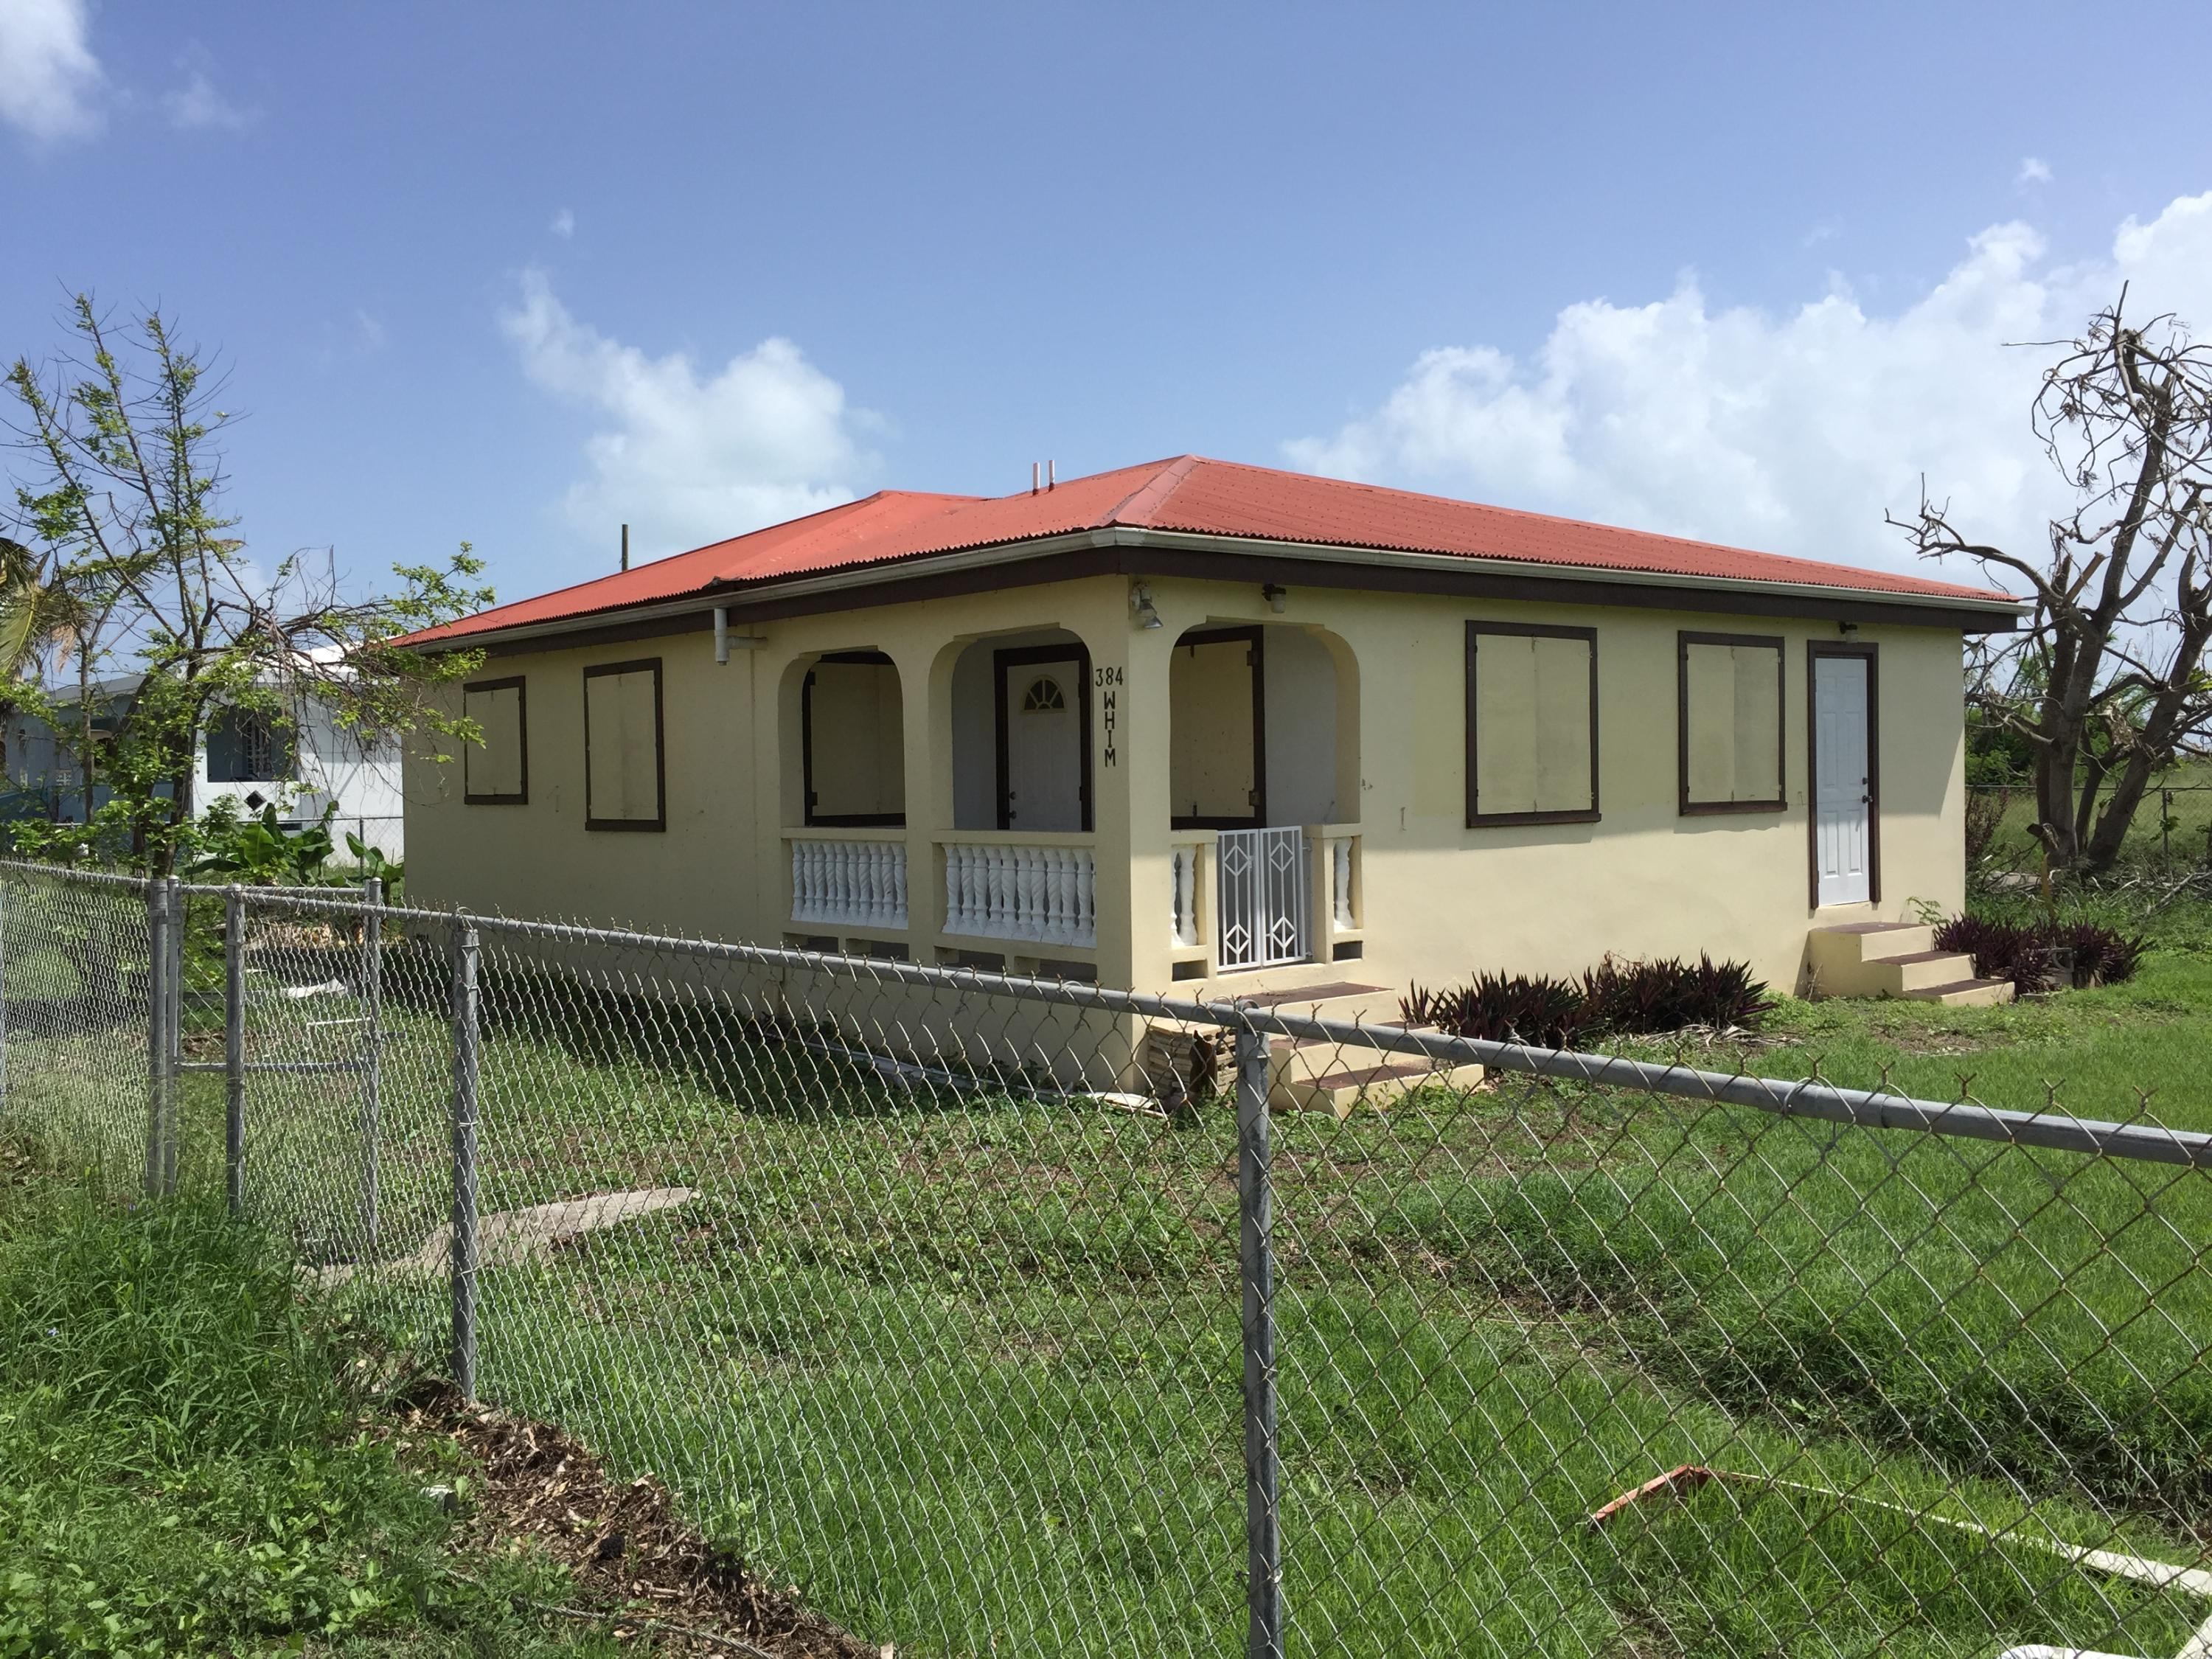 Single Family Home for Sale at 384 Whim (Two Williams) WE 384 Whim (Two Williams) WE St Croix, Virgin Islands 00840 United States Virgin Islands